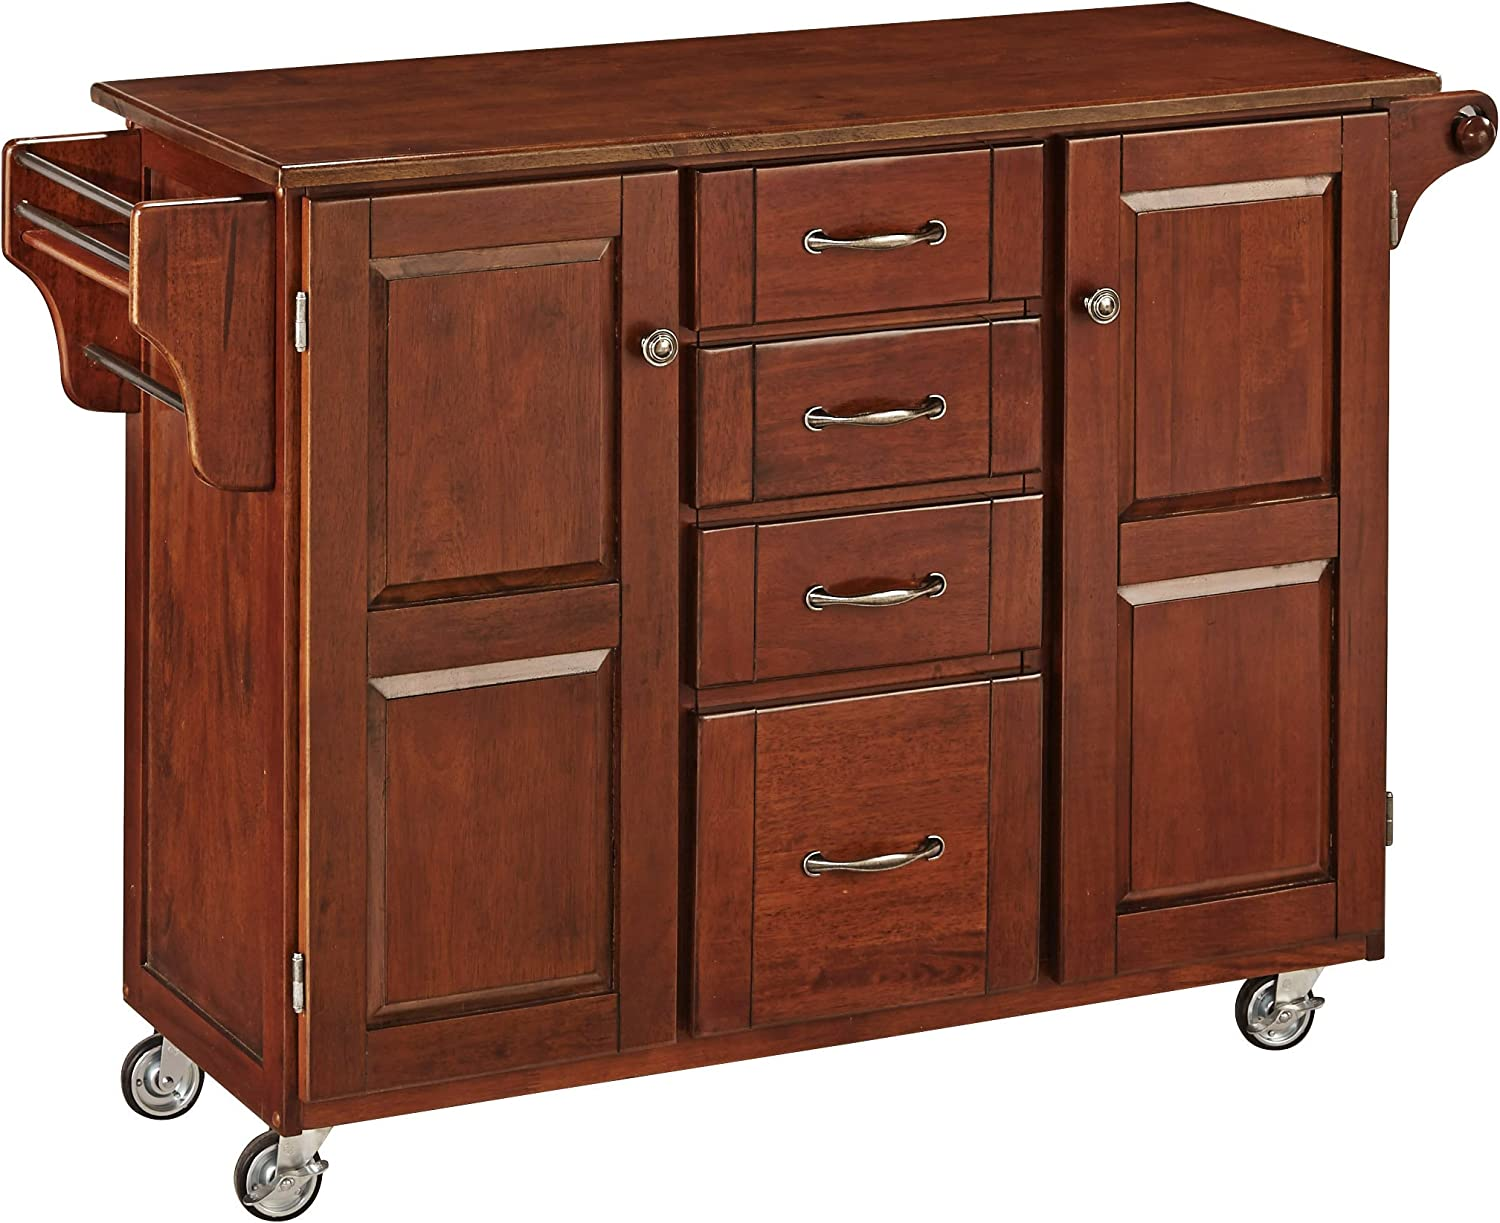 Create-a-Cart Cherry 2 Door Cabinet Kitchen Cart with Cherry Top by Home Styles